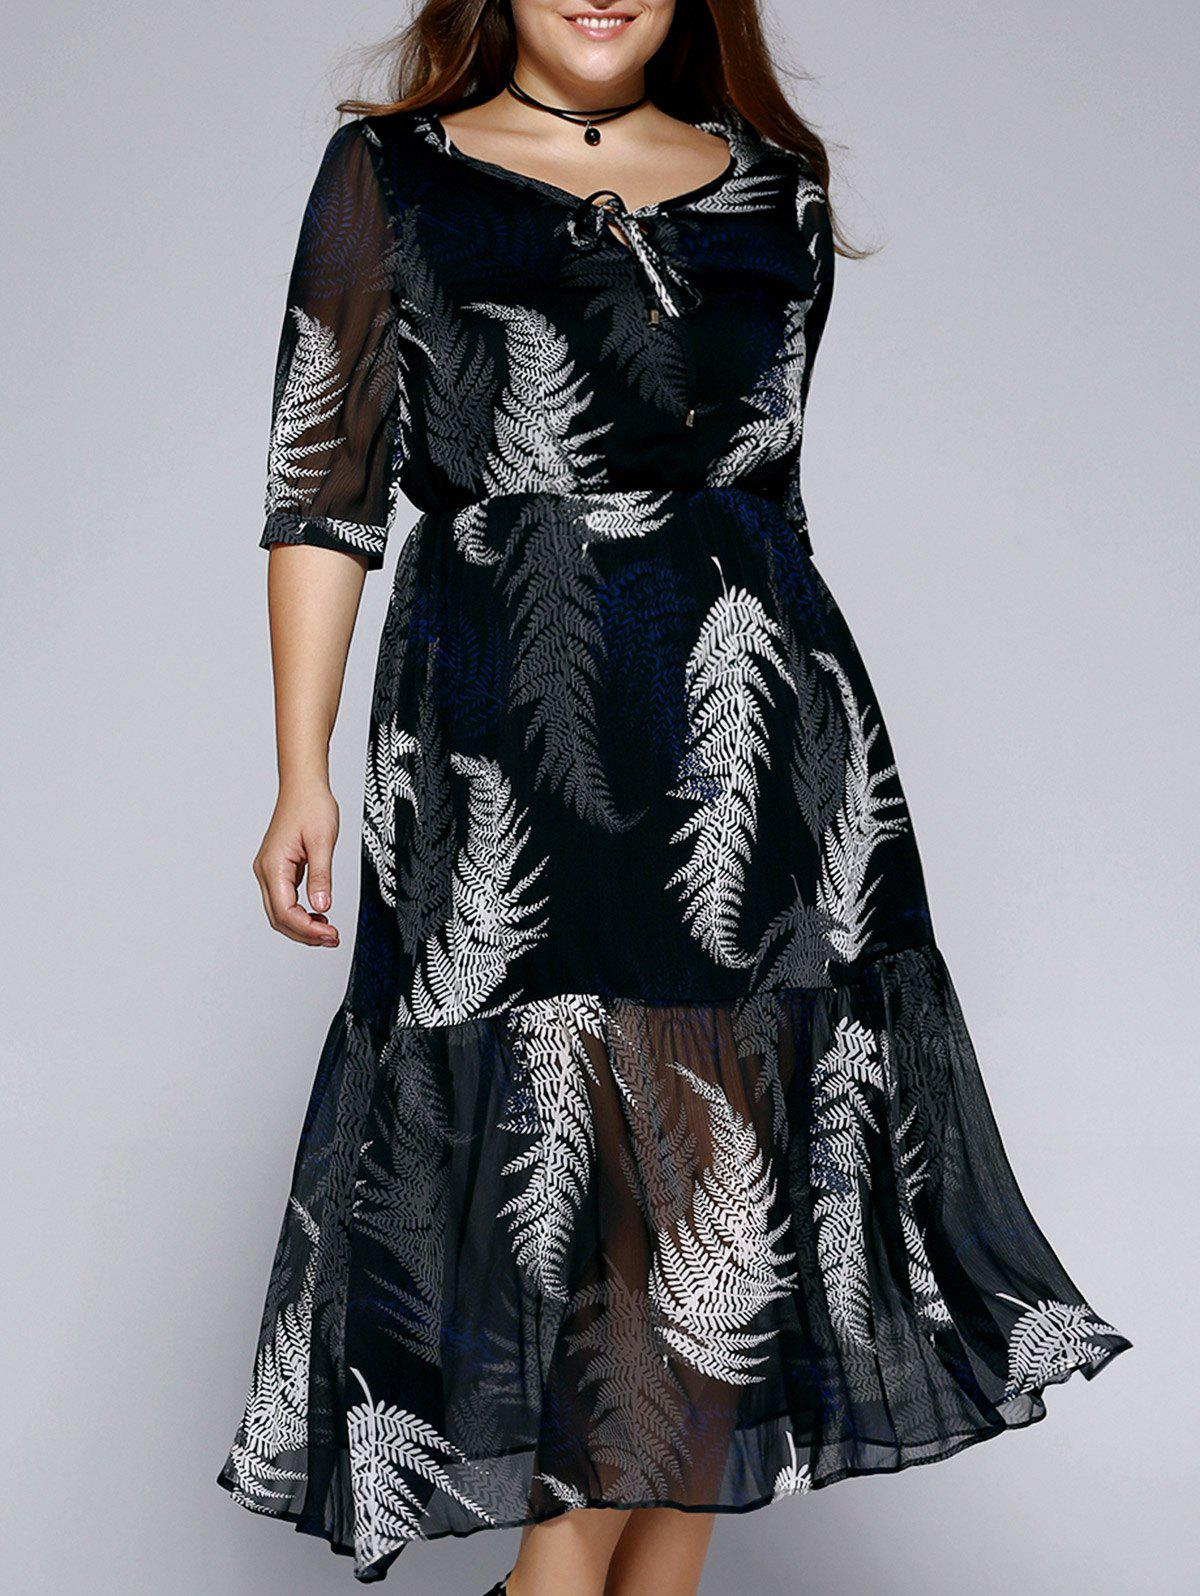 Oversized Stylish Tie Front Plant Print Dress - BLACK XL